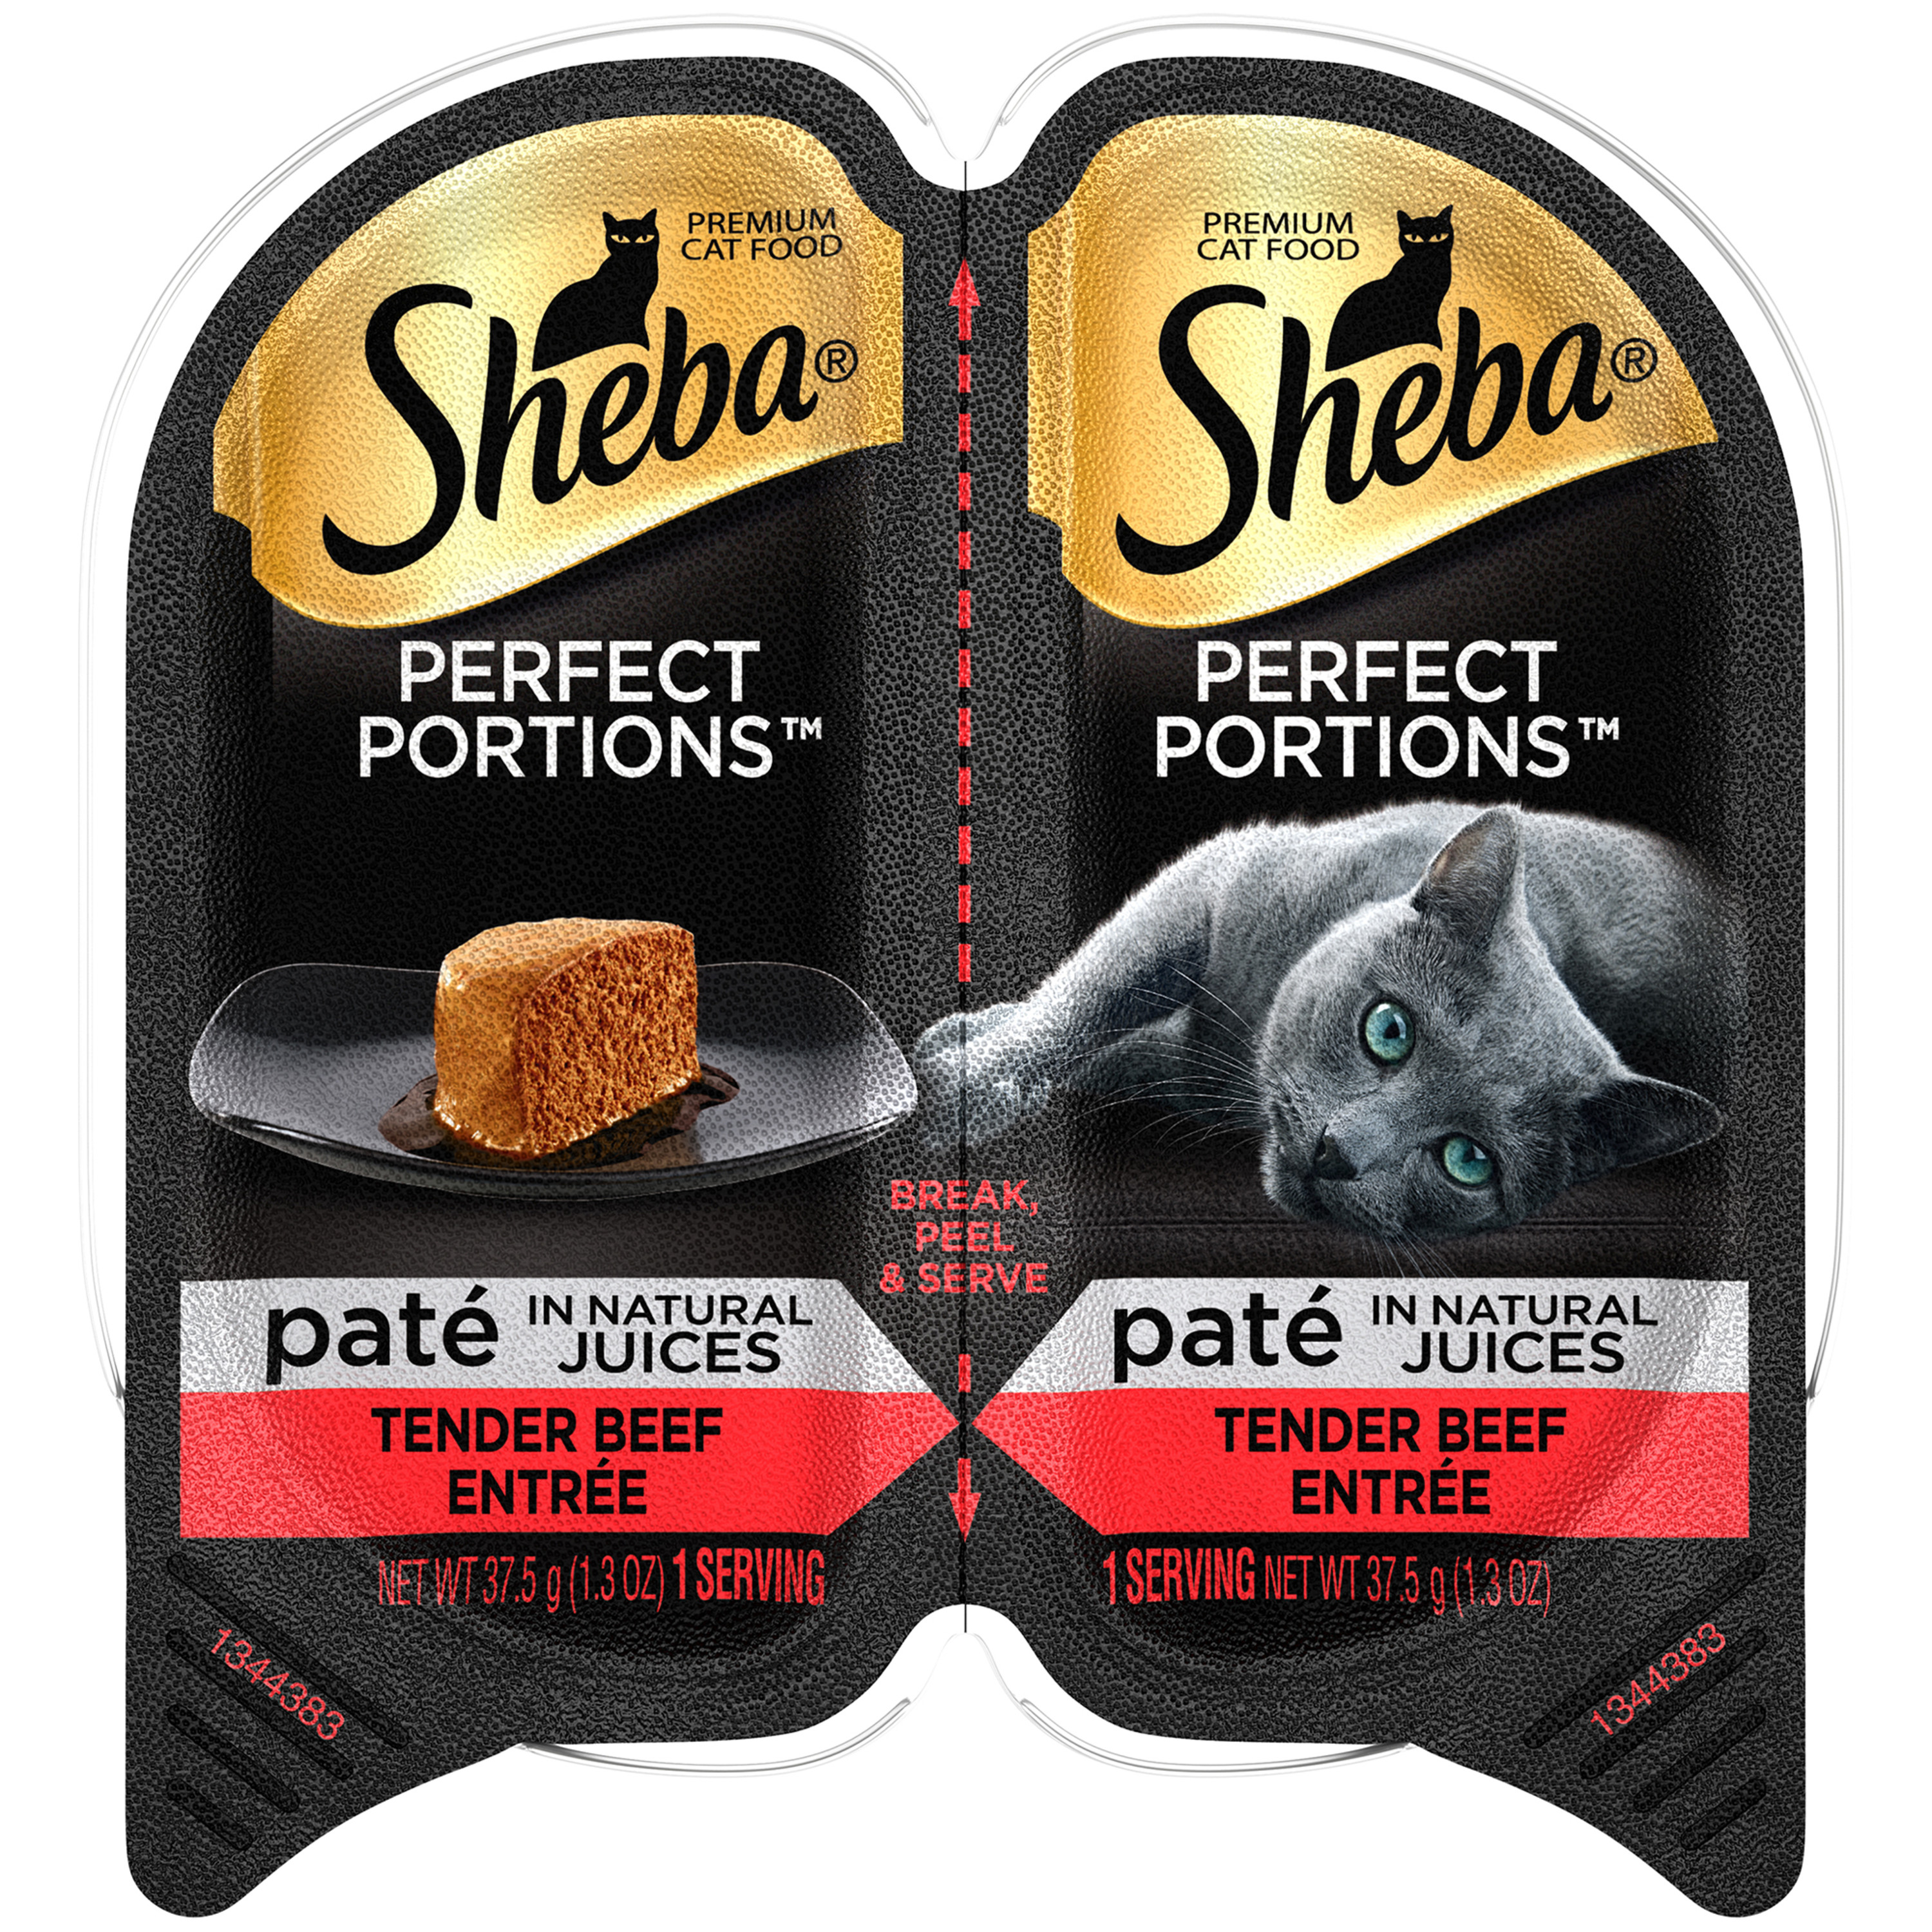 Sheba Perfect Portions Pate In Natural Juices Tender Beef Grain Free Wet Cat Food 2.6 Ounces (1 Twin Pack)